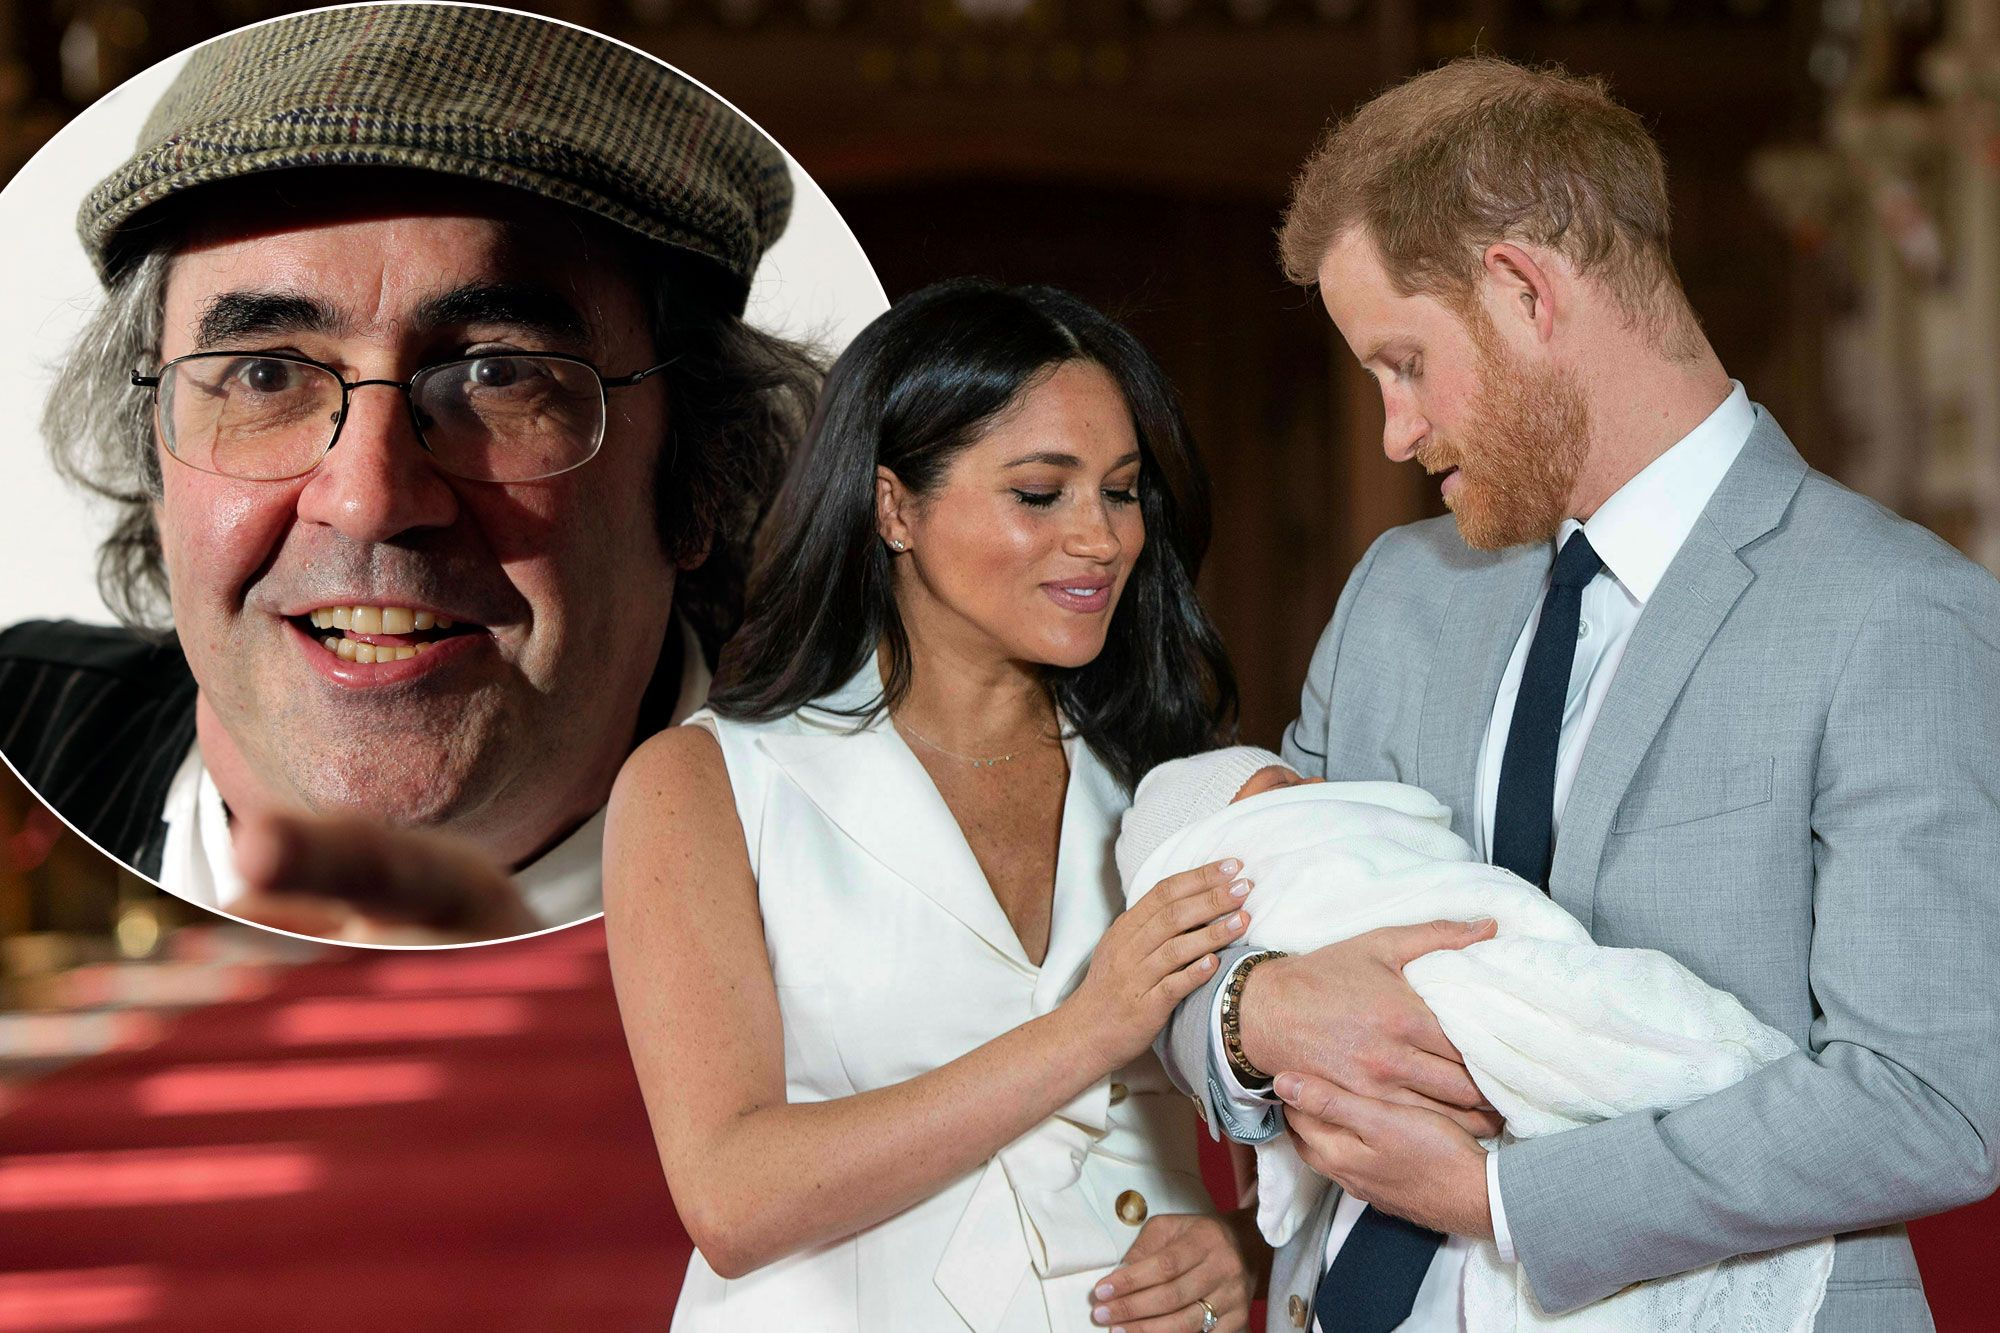 danny baker fired from bbc for prince harry monkey joke